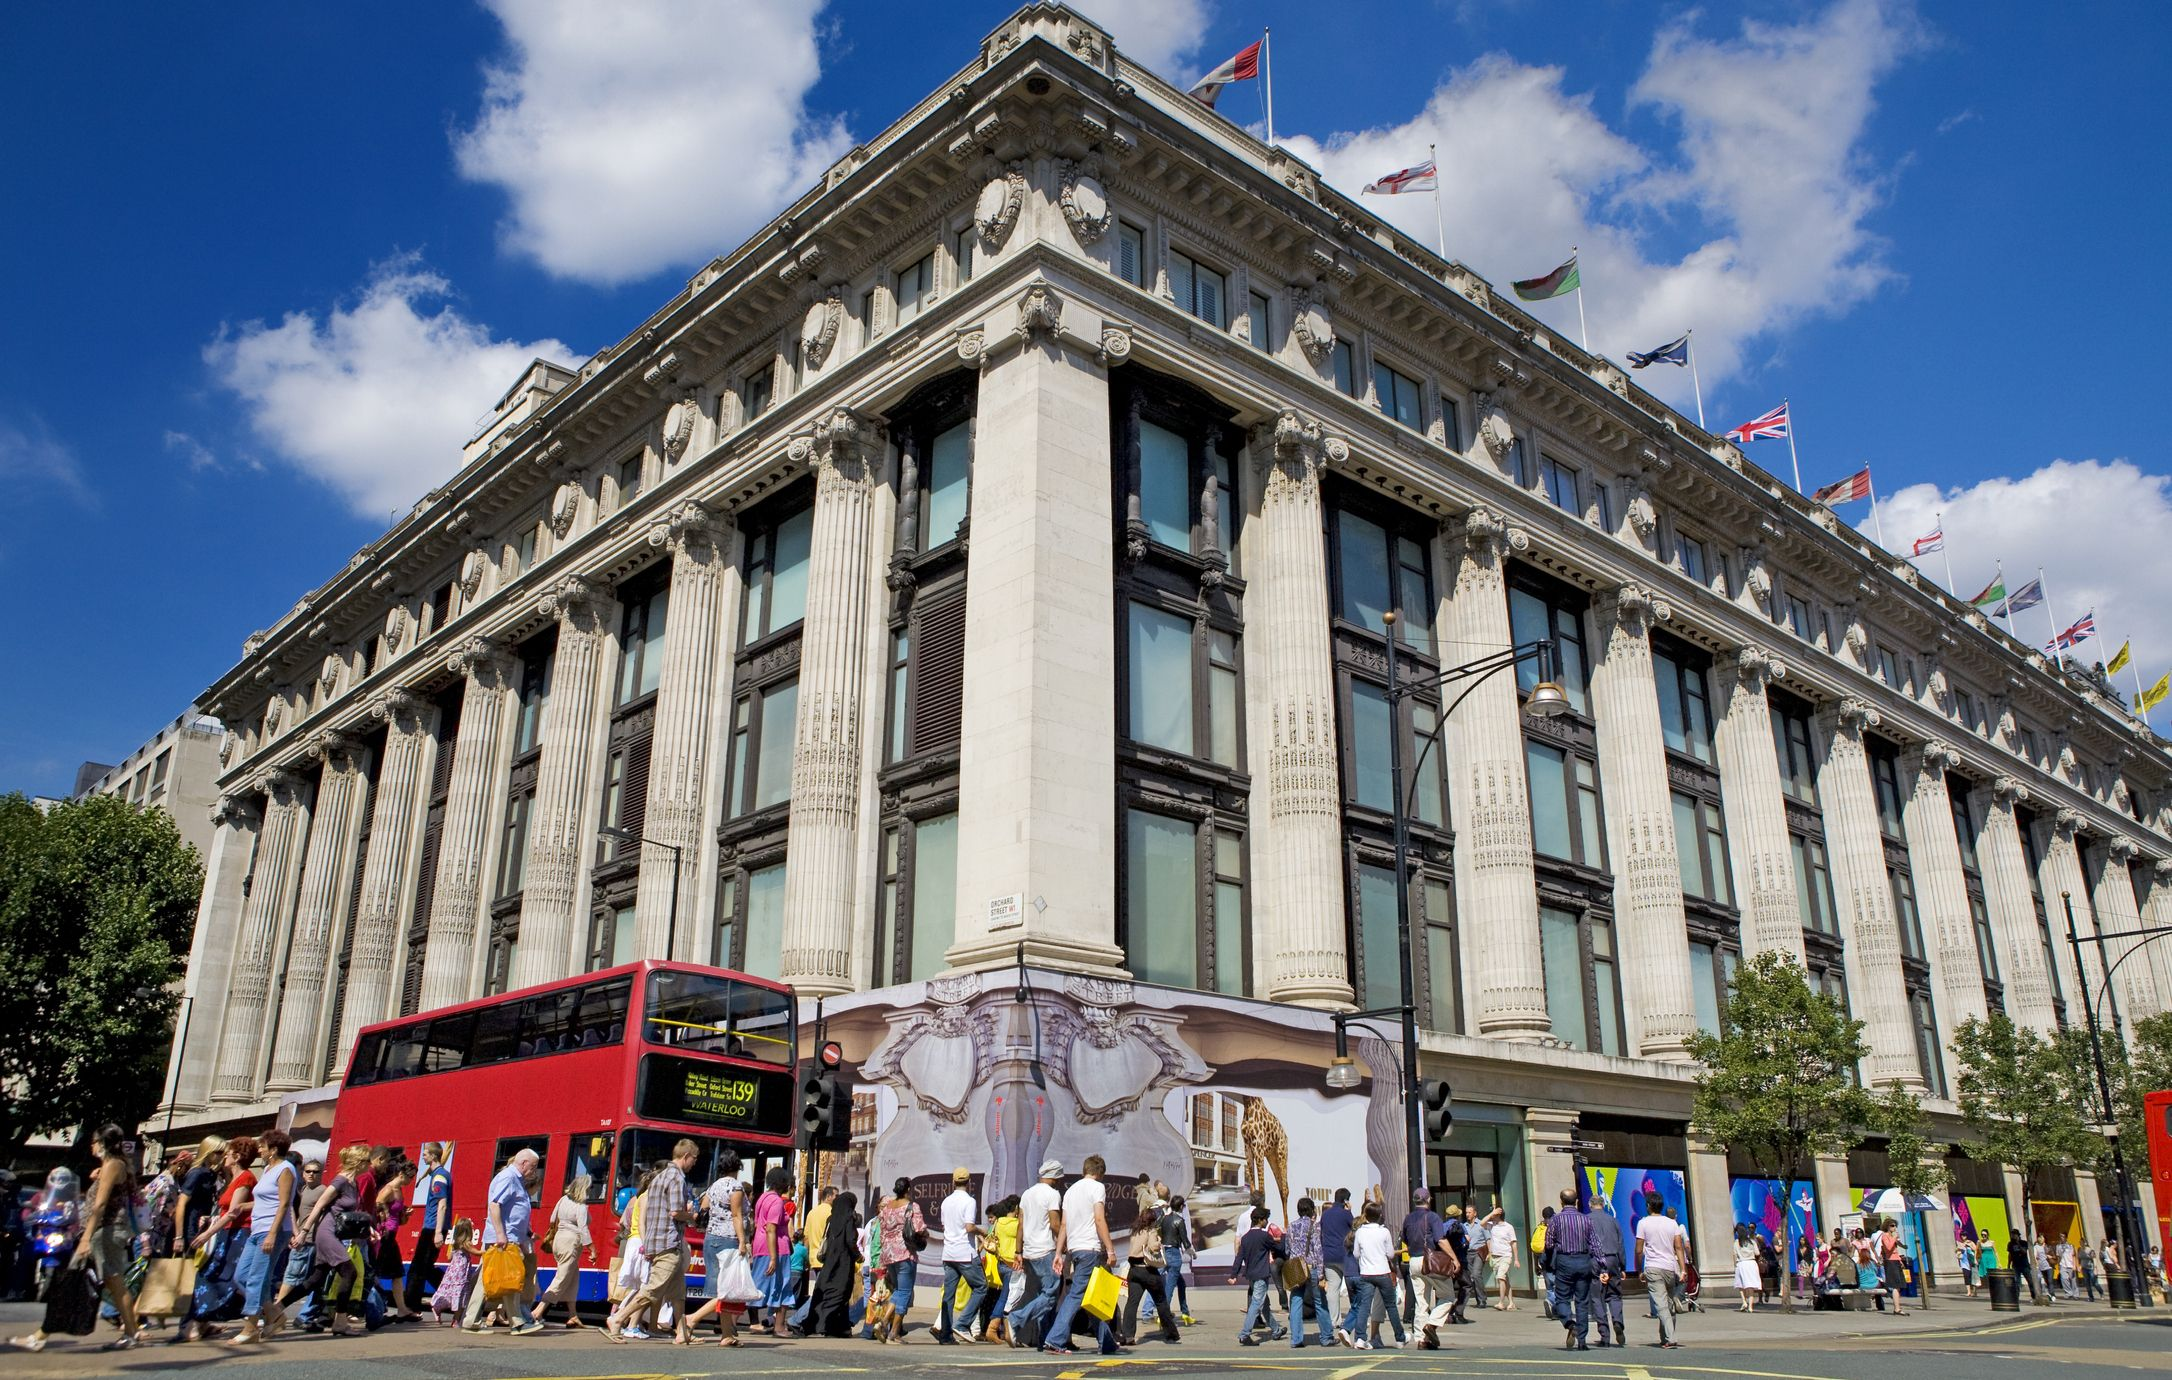 You can now get married at Selfridges